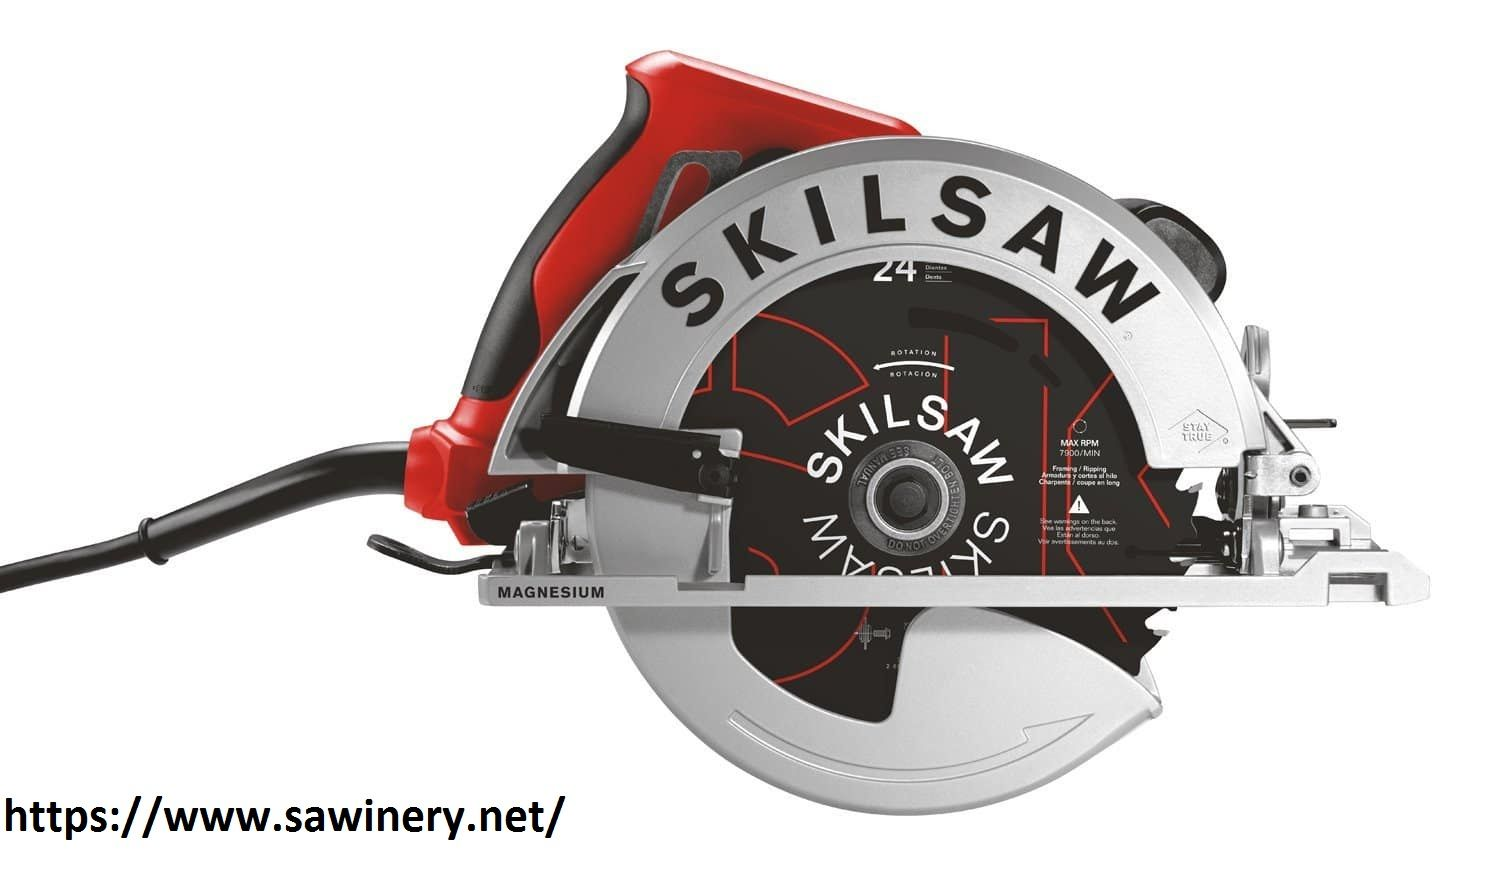 Sawinery With Images Skil Saw Best Circular Saw Circular Saws